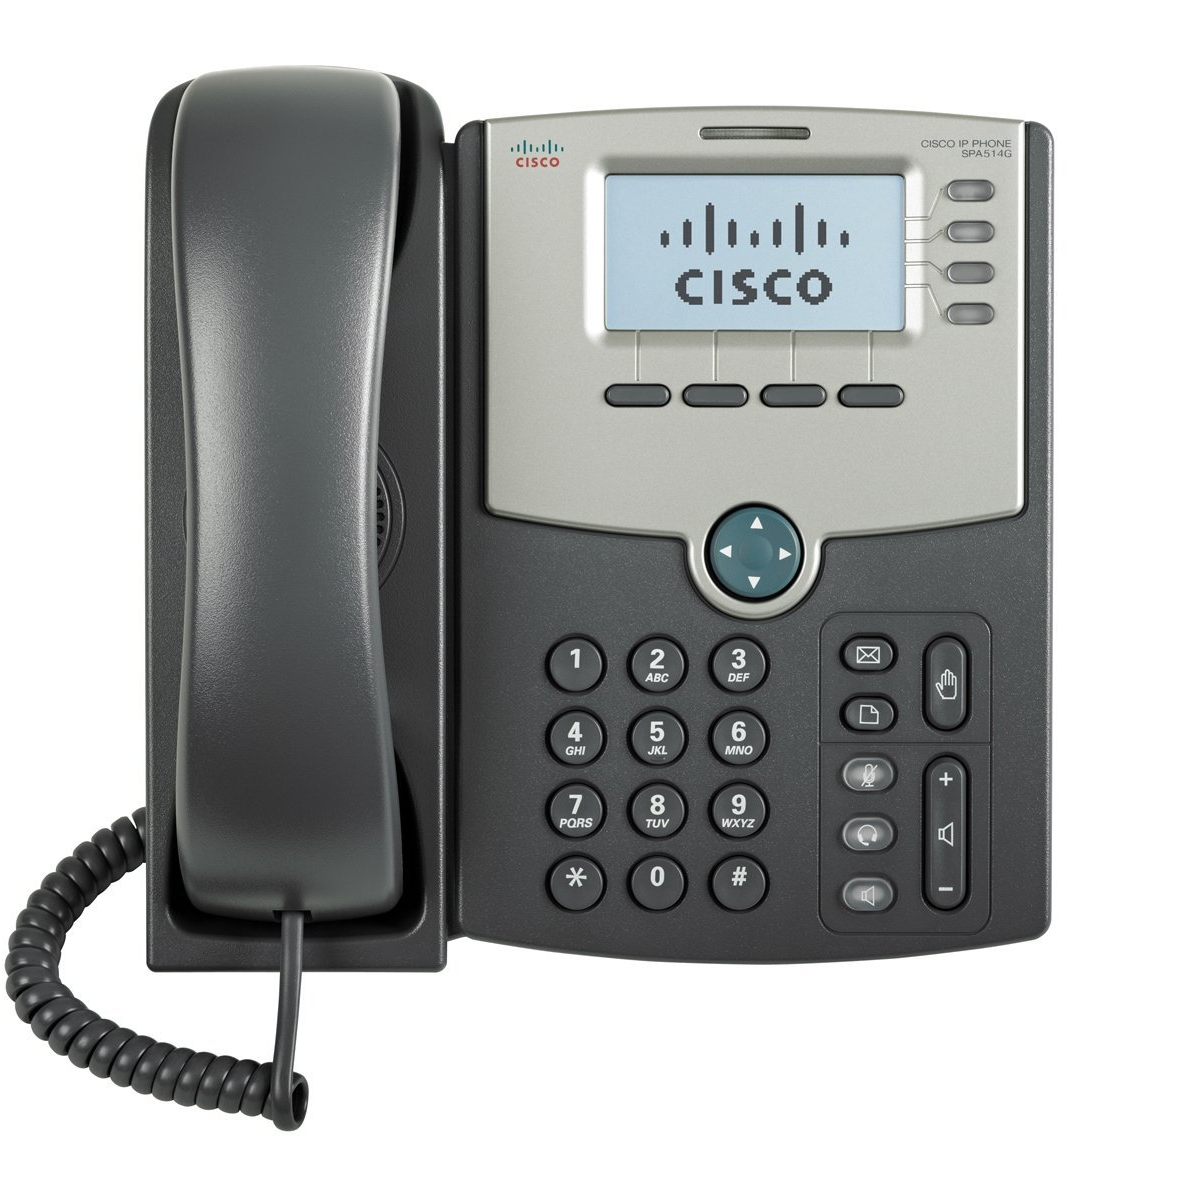 Cisco SPA514G 4-Line IP Phone with Display, PoE and Gigabit PC Port